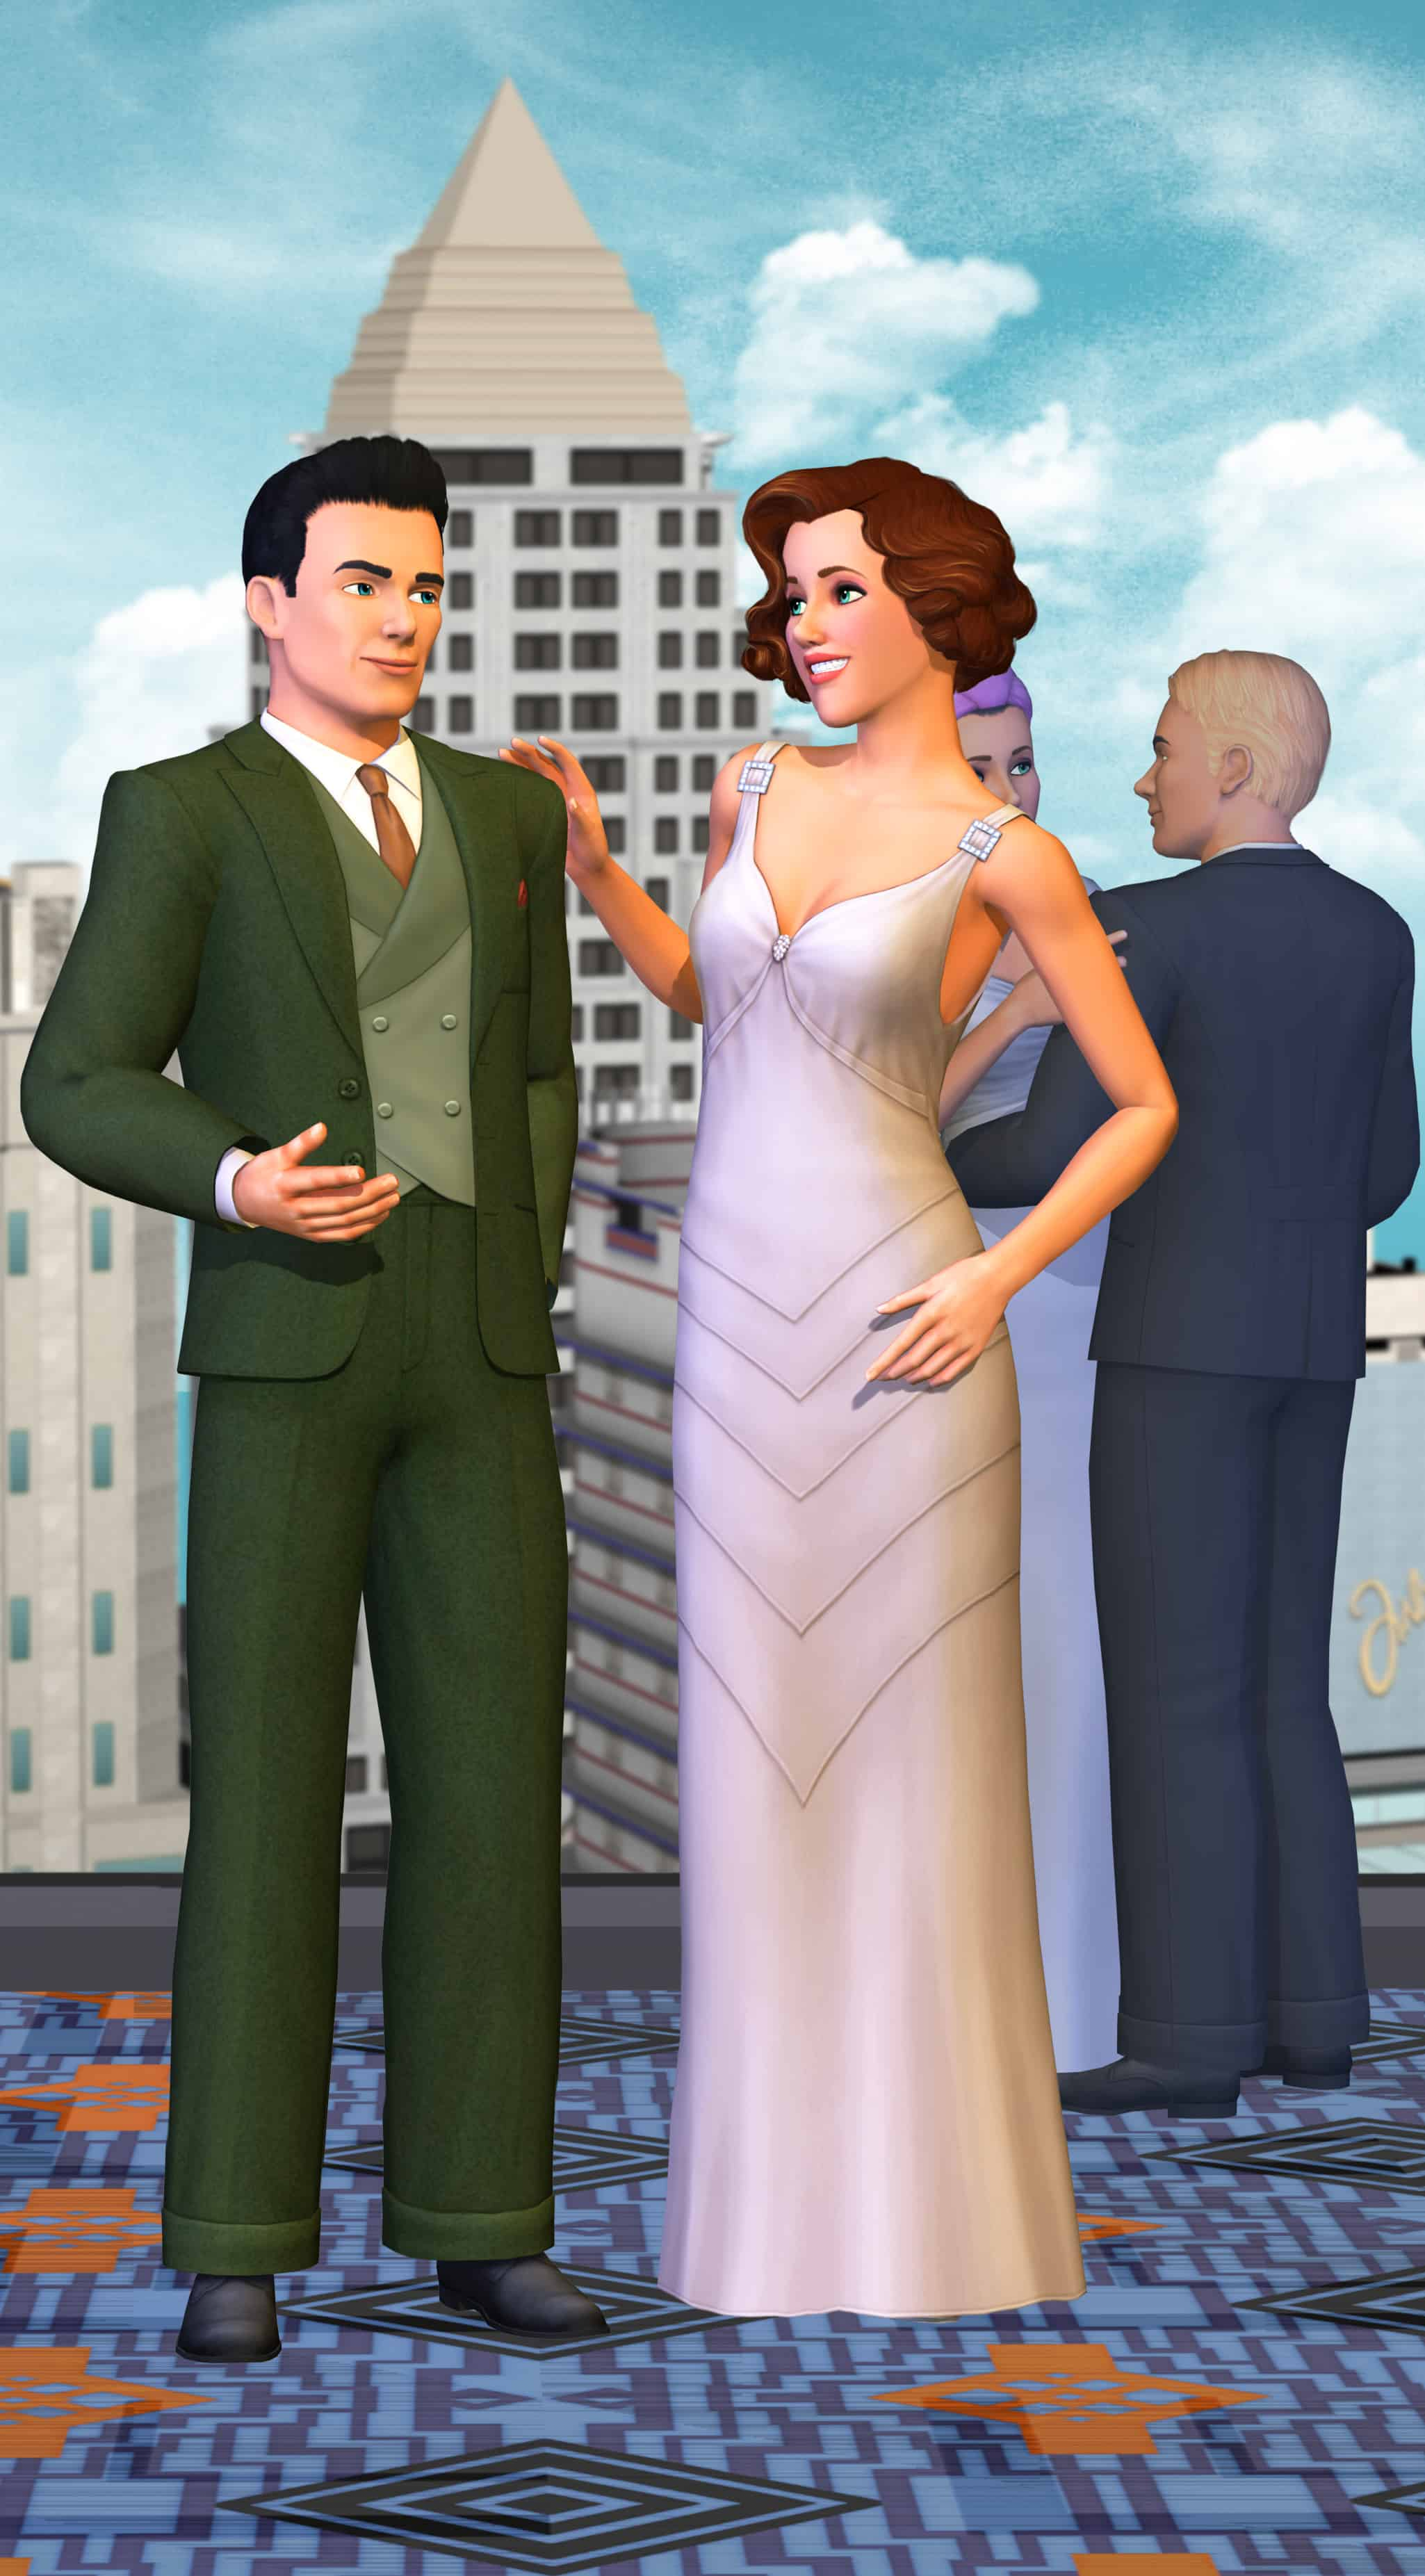 The Sims 3 roaring